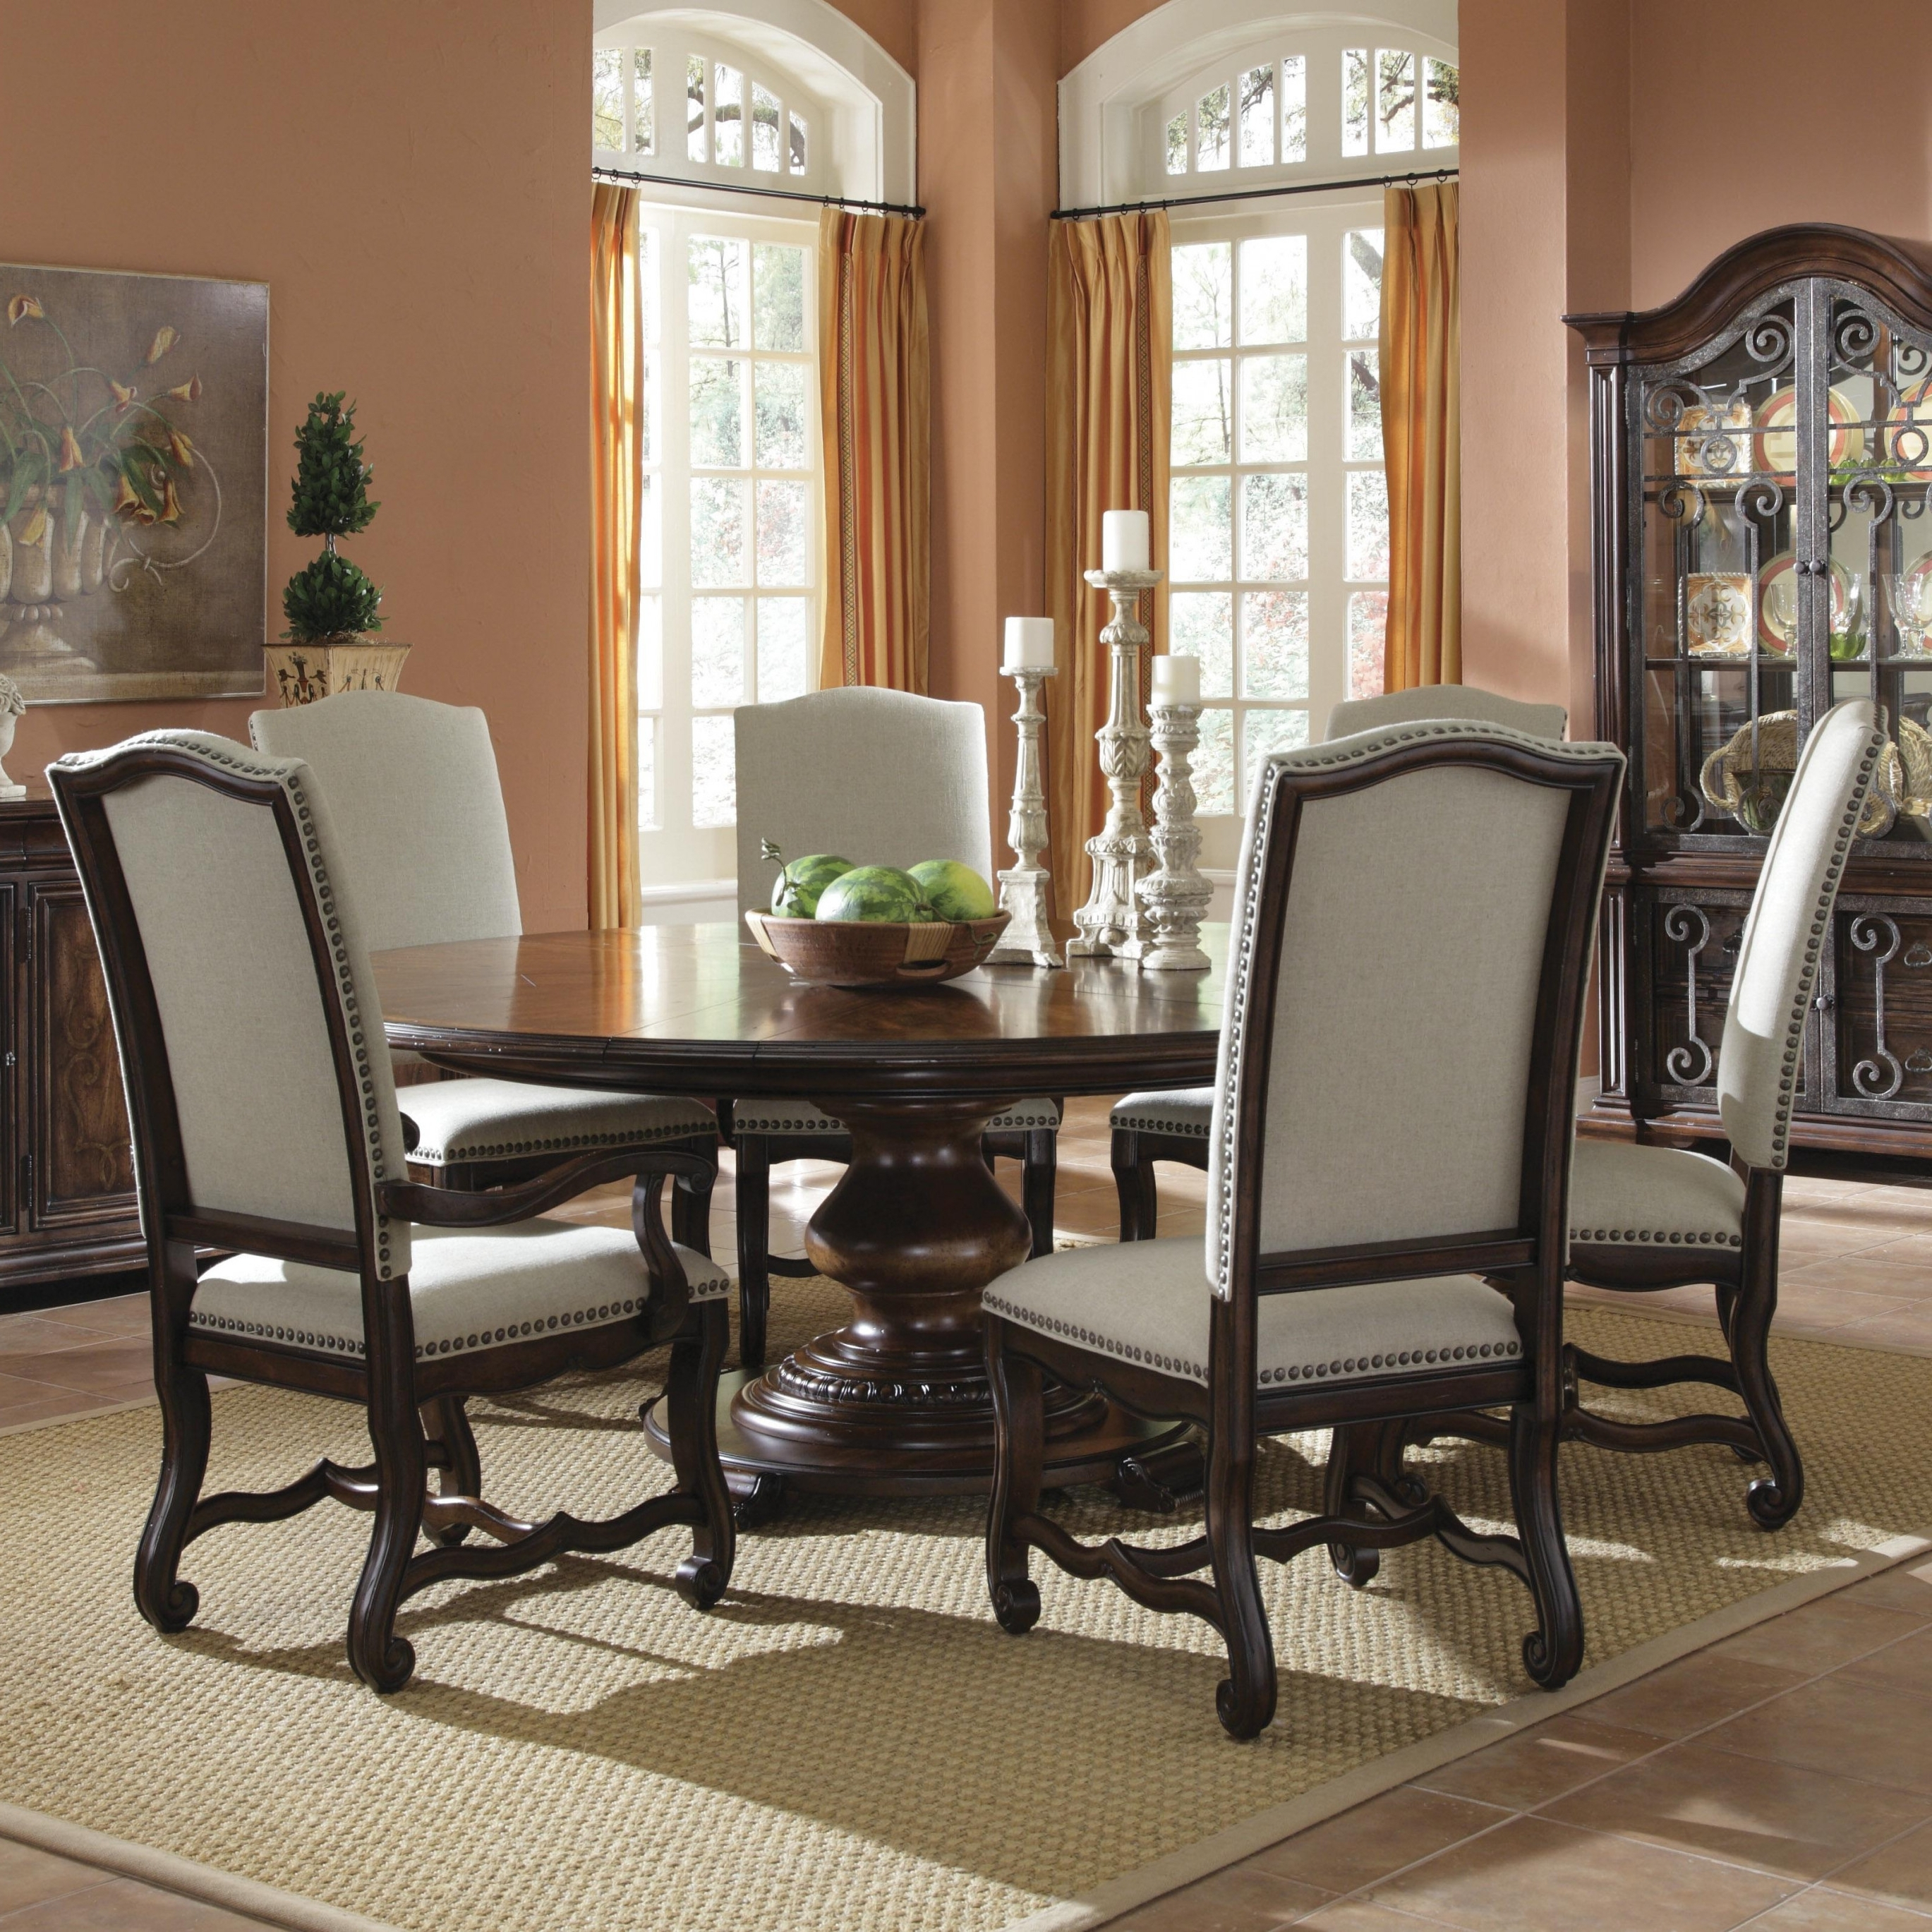 Widely Used Round Table 6 Person Round Dining Table Household Plan About Round Within 6 Person Round Dining Tables (View 11 of 25)